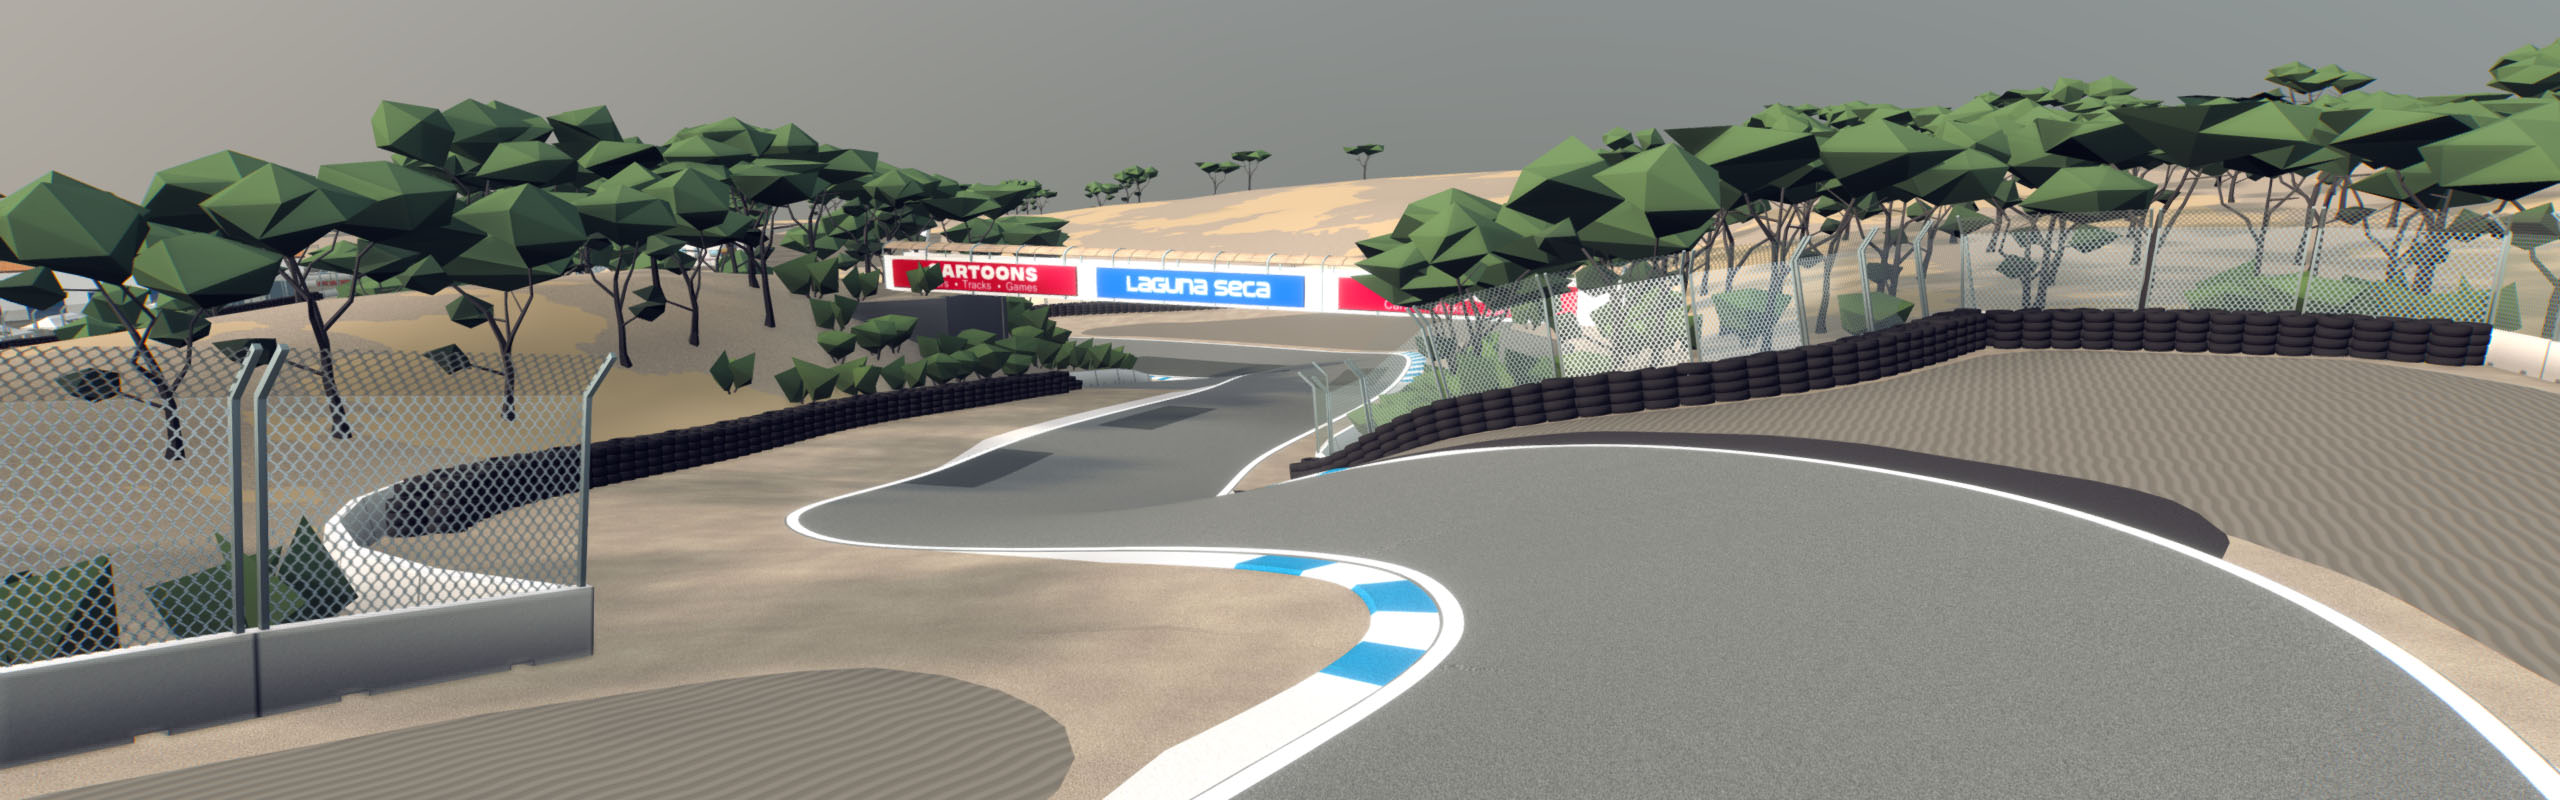 Cartoon Style Race Track Laguna Seca